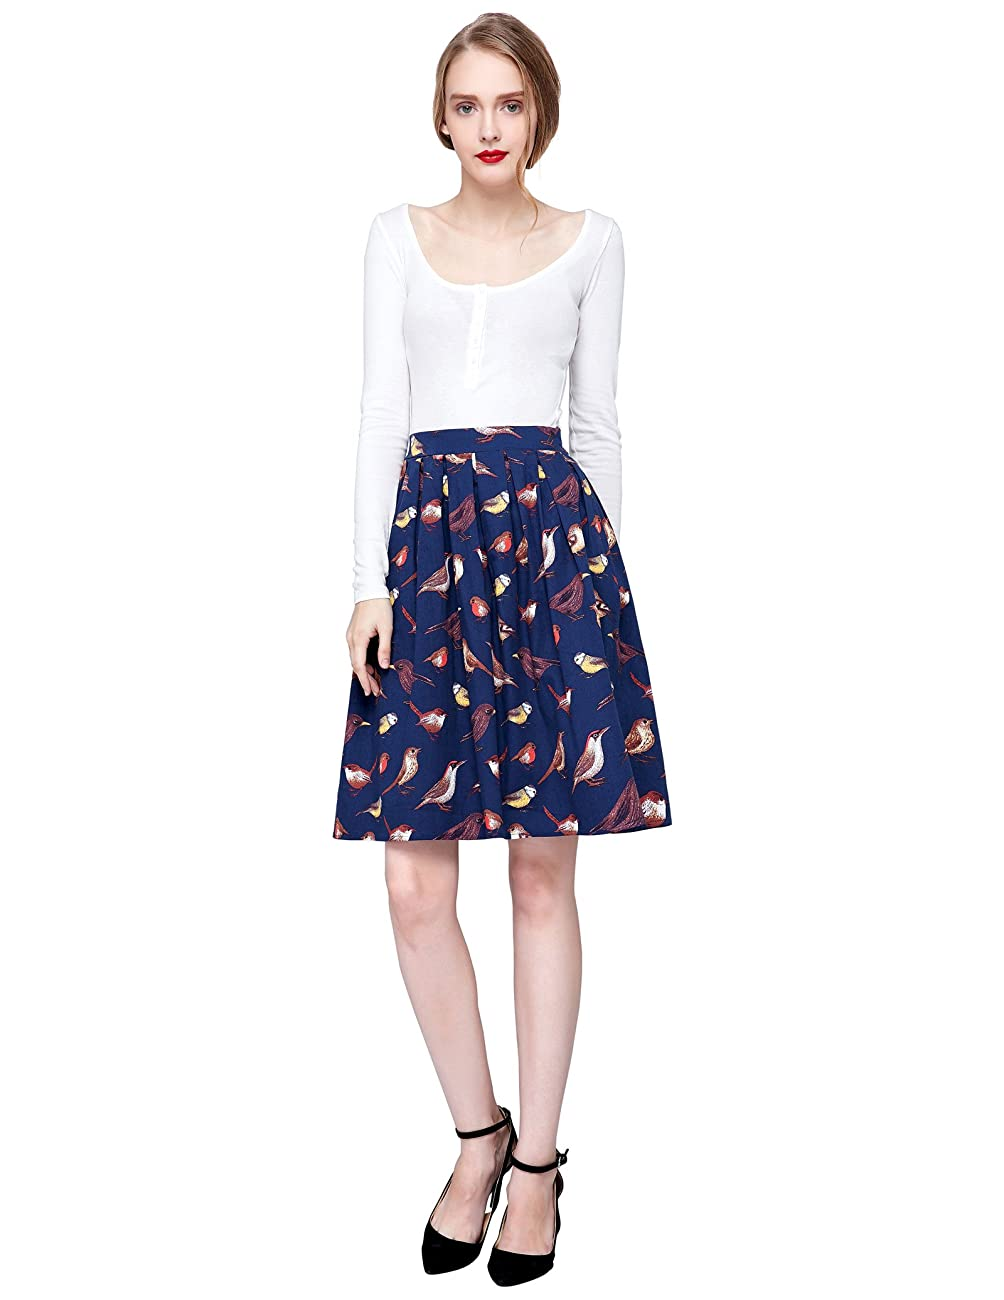 GRACE KARIN Women Pleated Vintage Skirts Floral Print CL6294 (Multi-Colored) 2